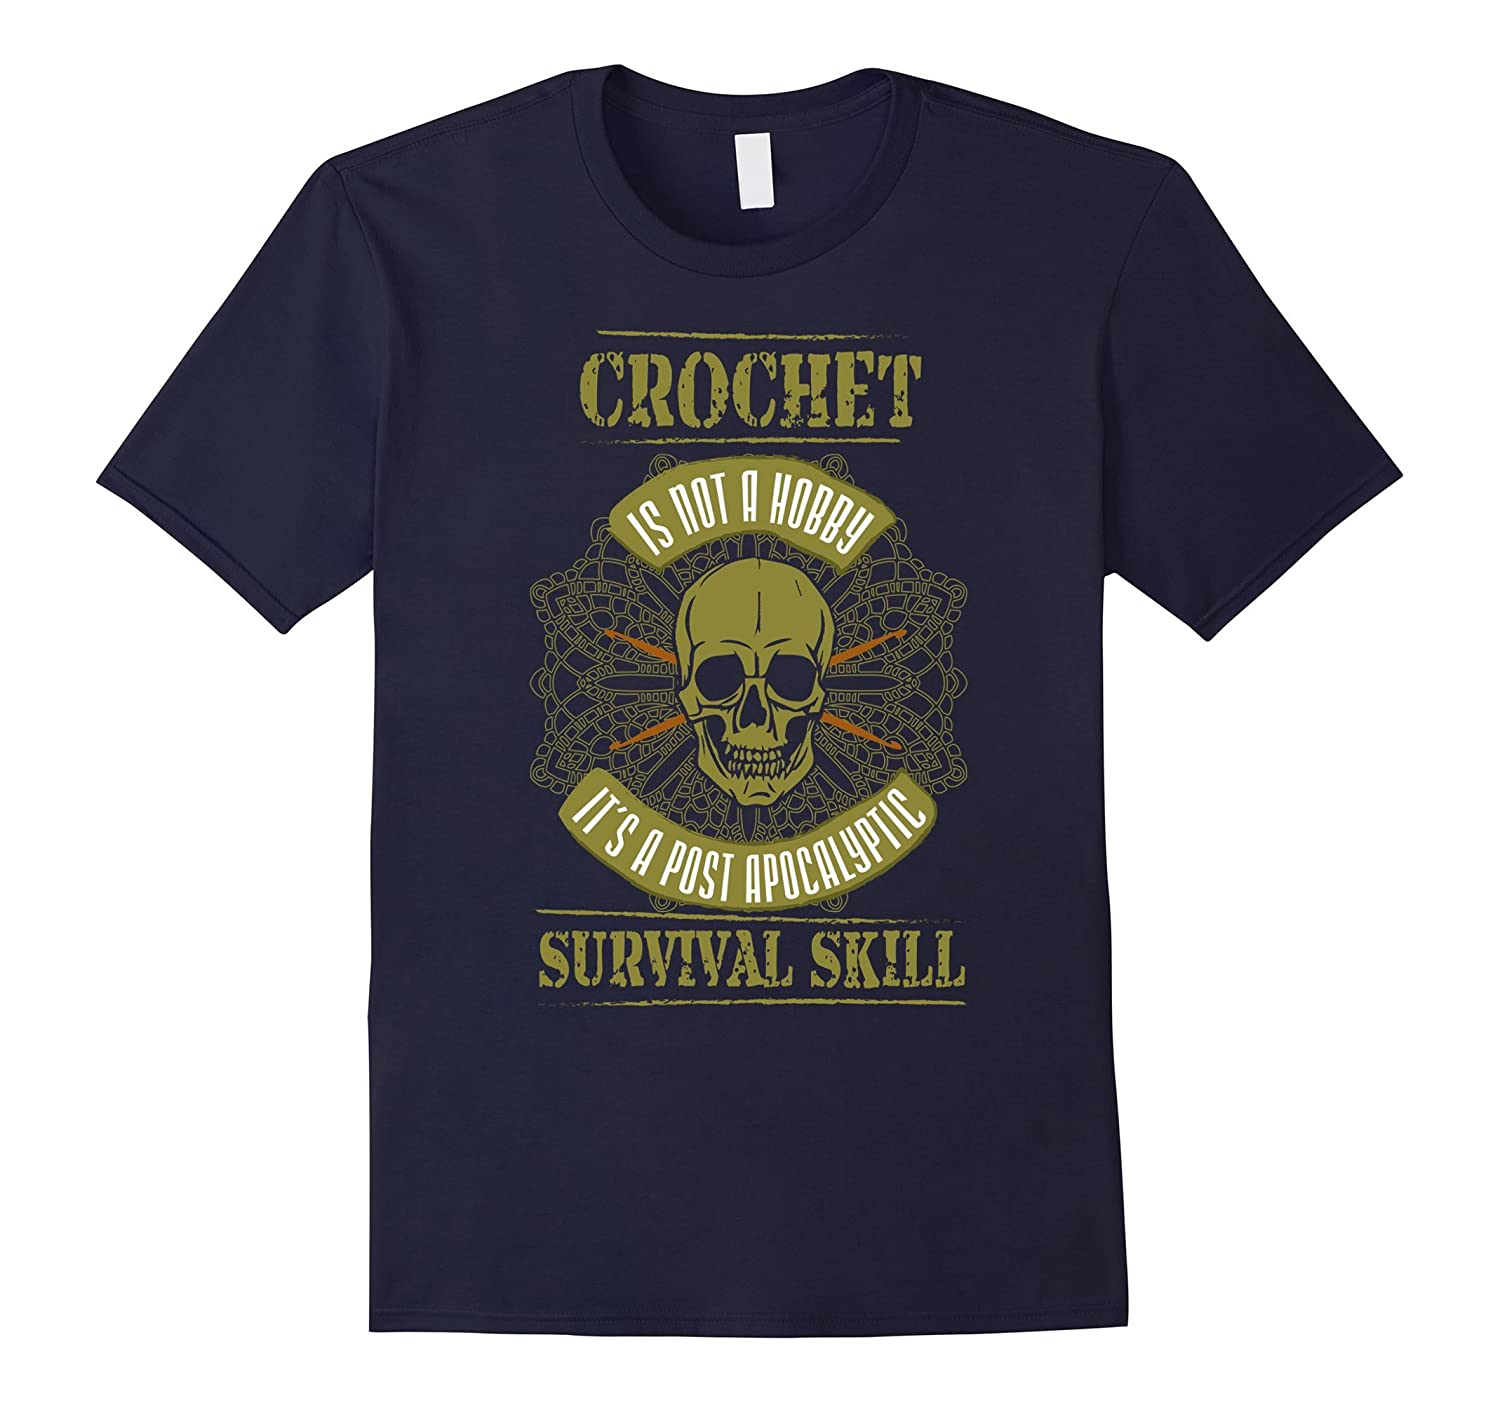 Crochet T-shirt - Crochet is not a hobby it's a post-FL